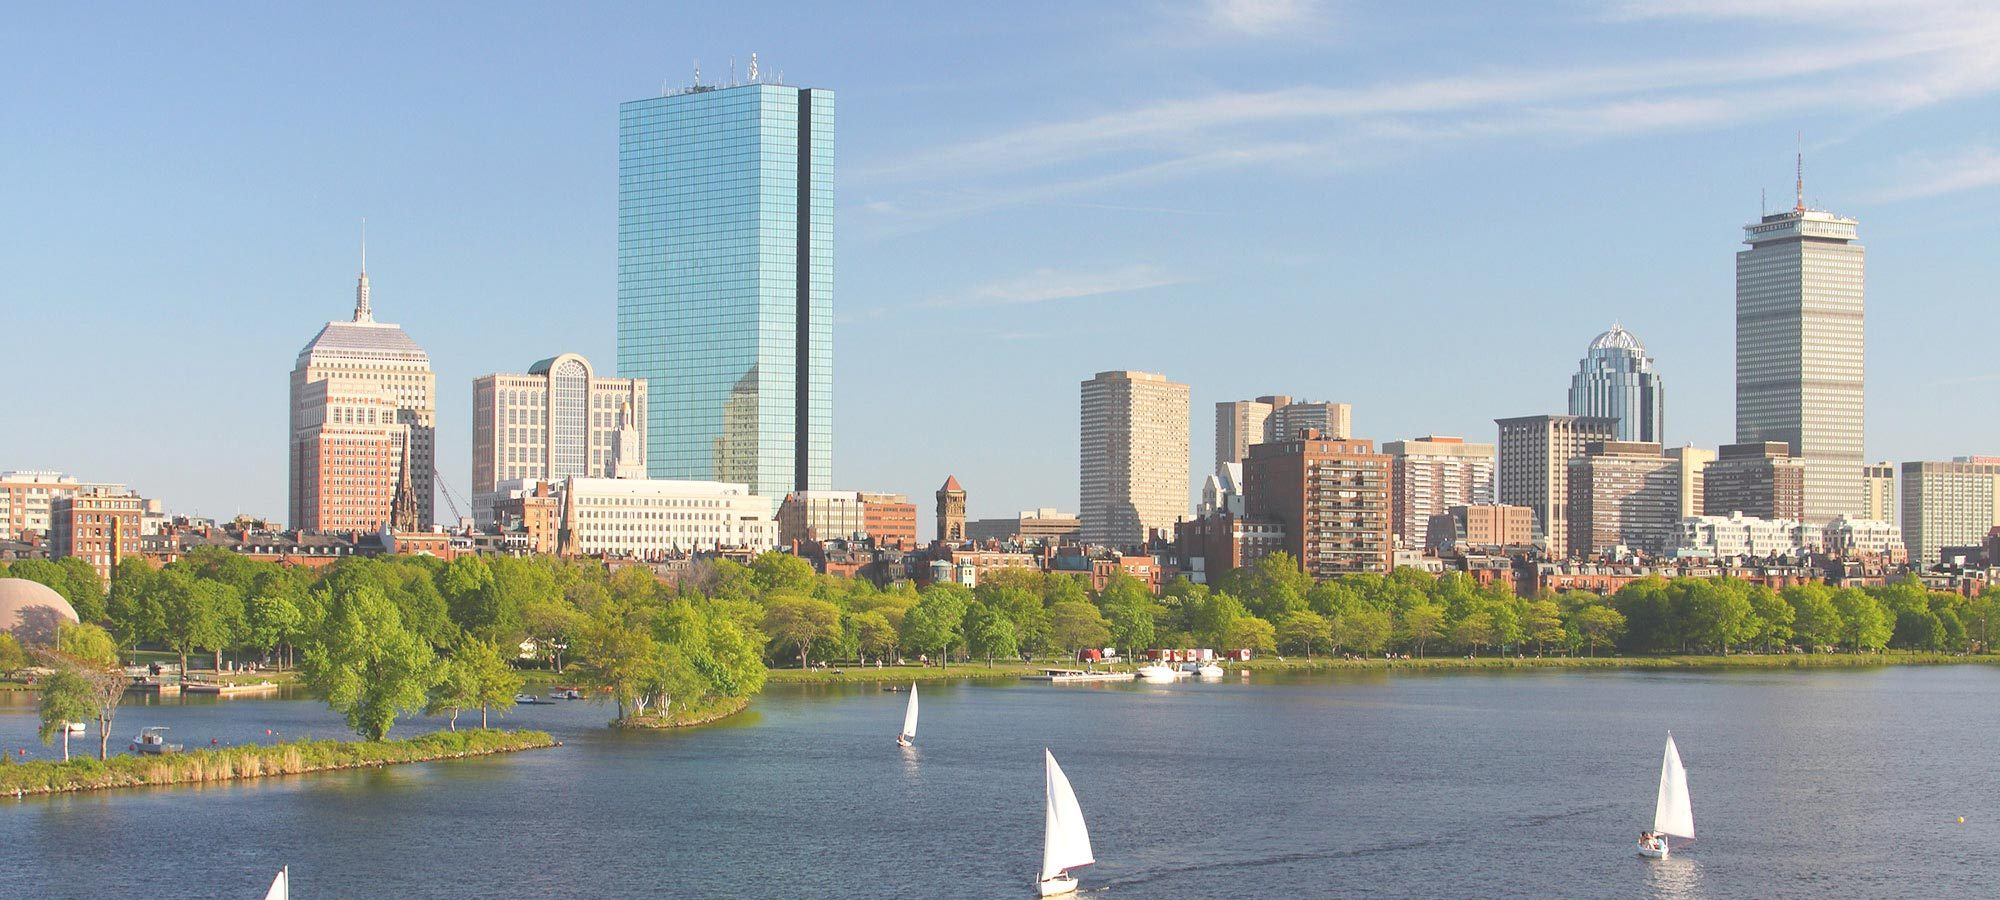 Boston Building gets Asbestos Abatement and Converts to Housing